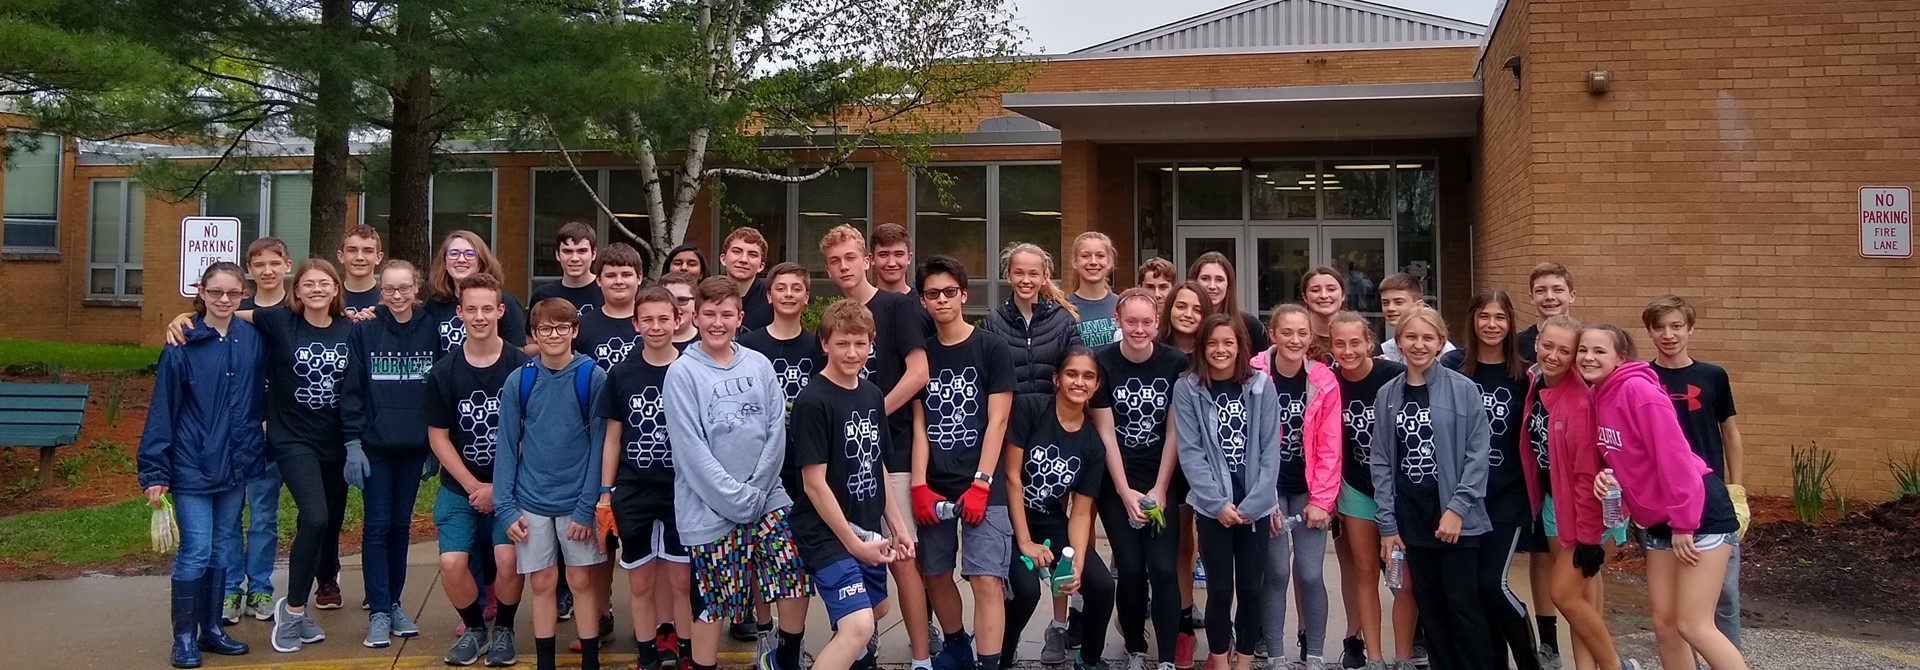 NJHS Members Participate in Mulch Project for The Highland Foundation